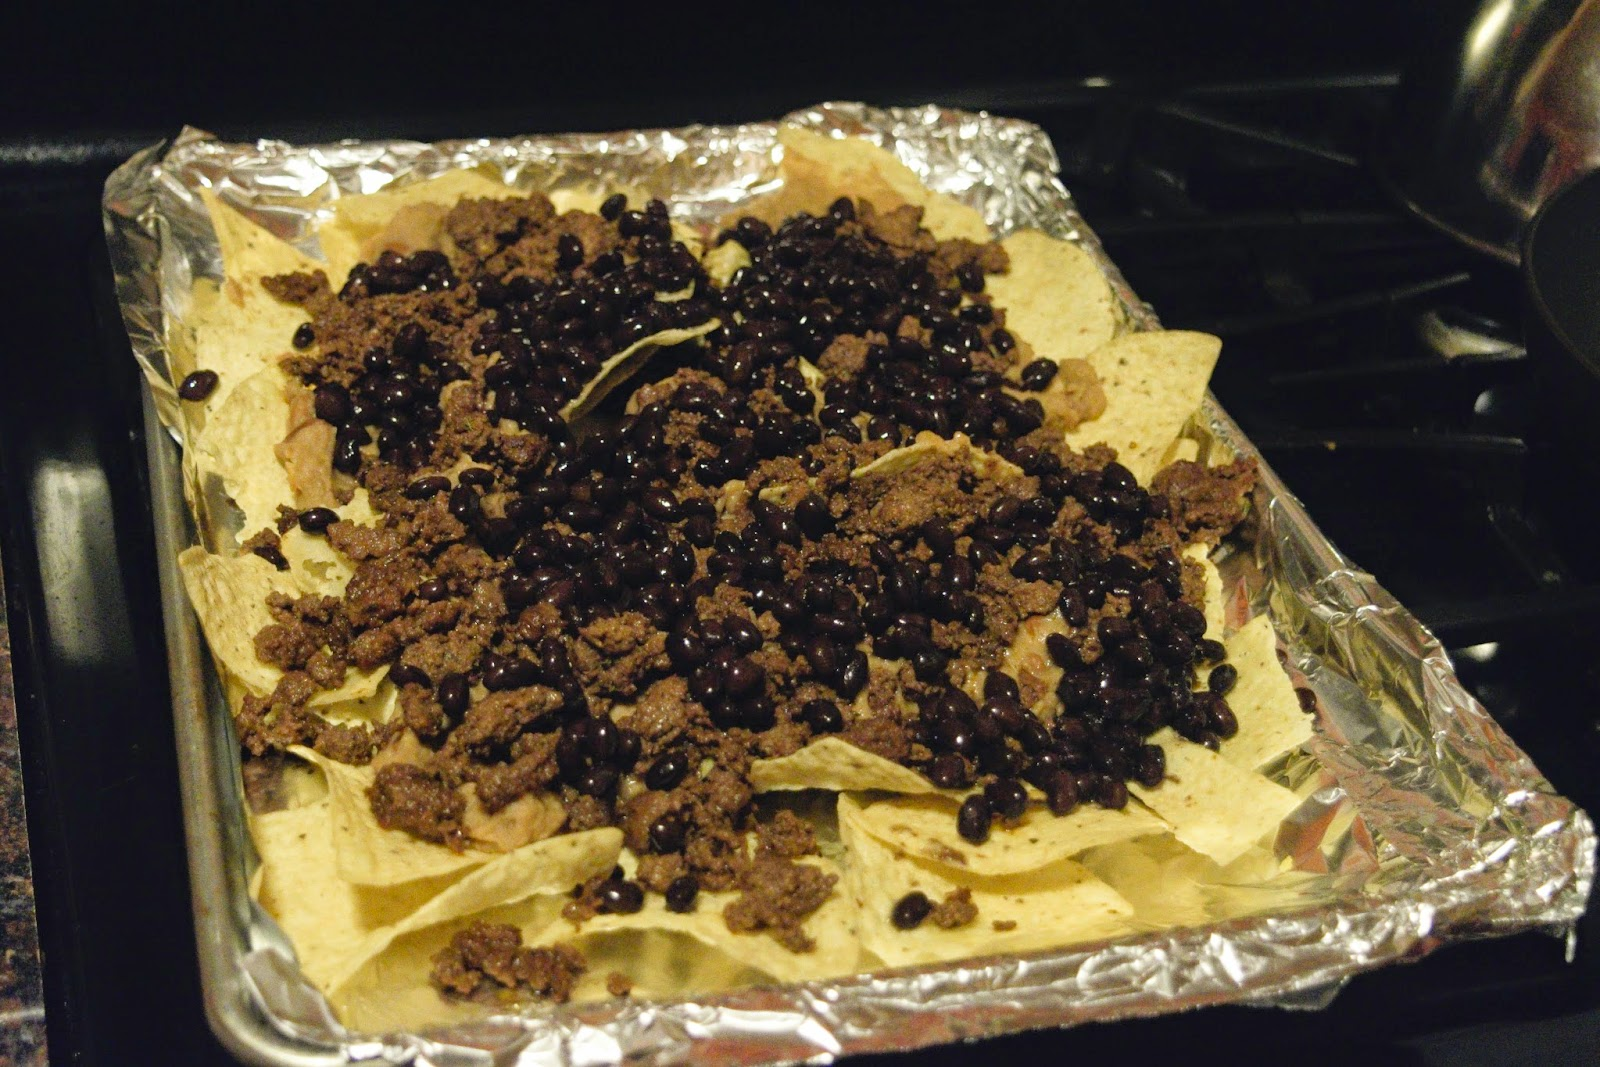 Black beans being added to the Nacho Supreme.